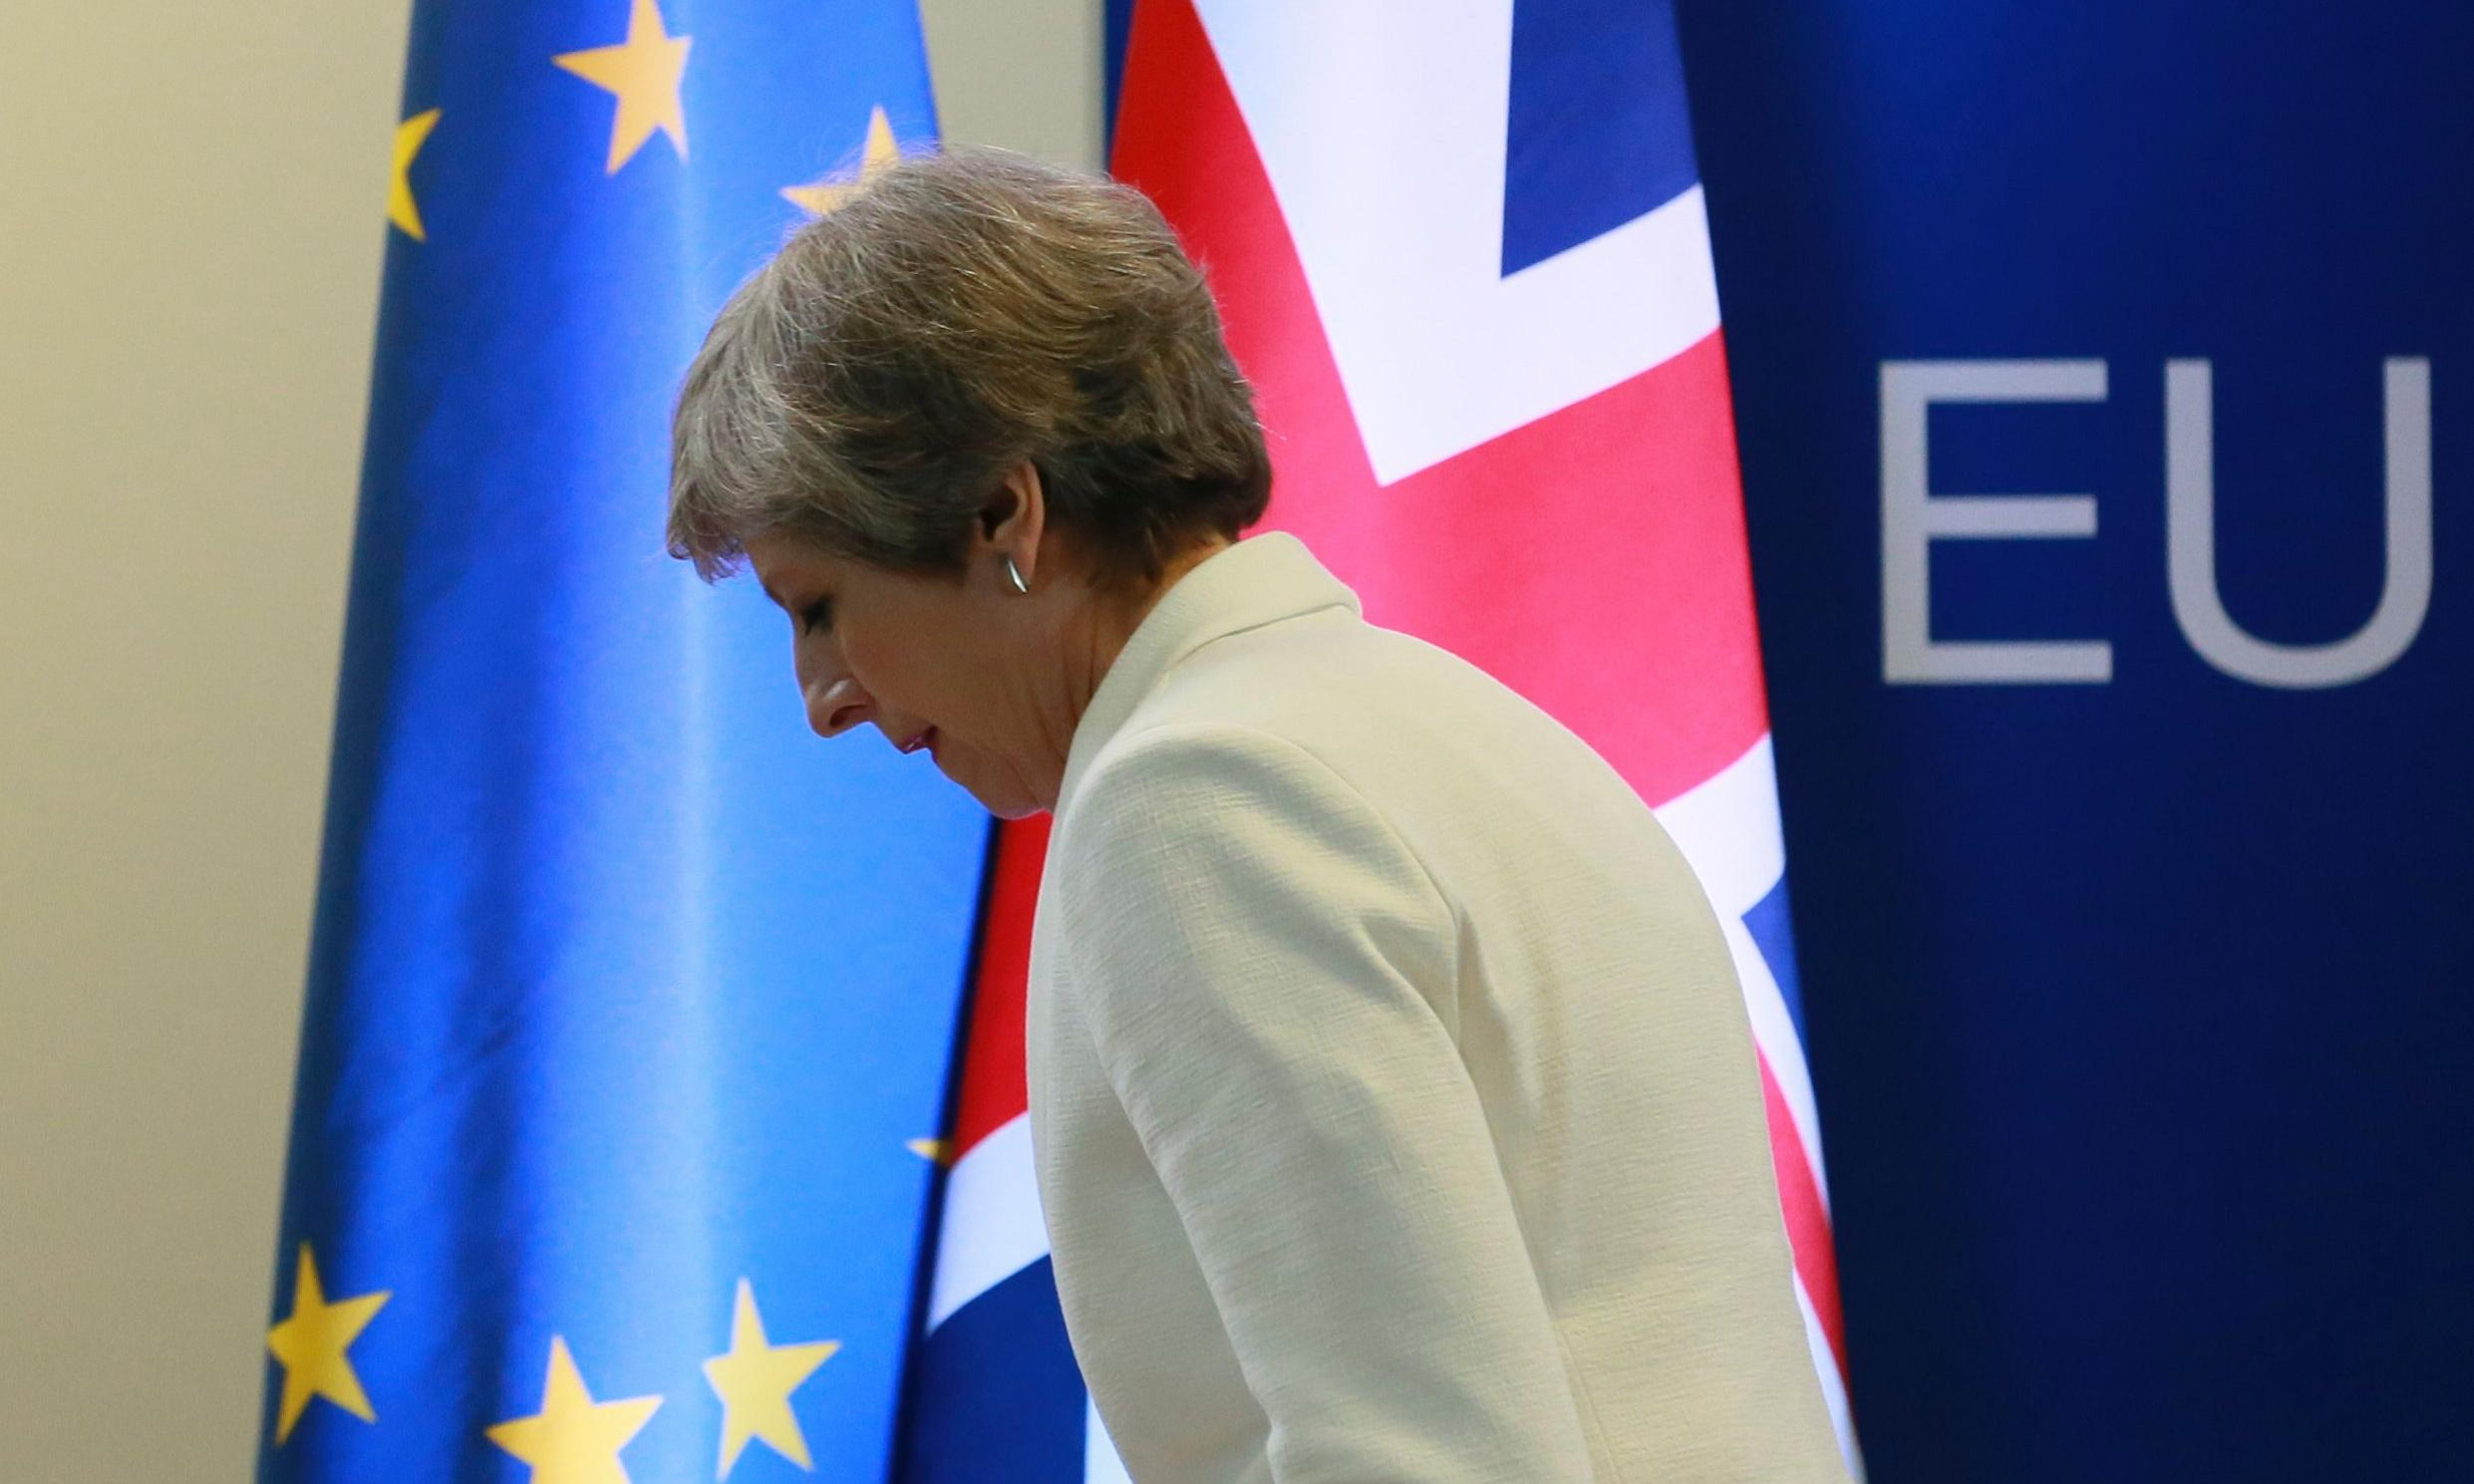 May 'did not understand EU when she triggered Brexit'